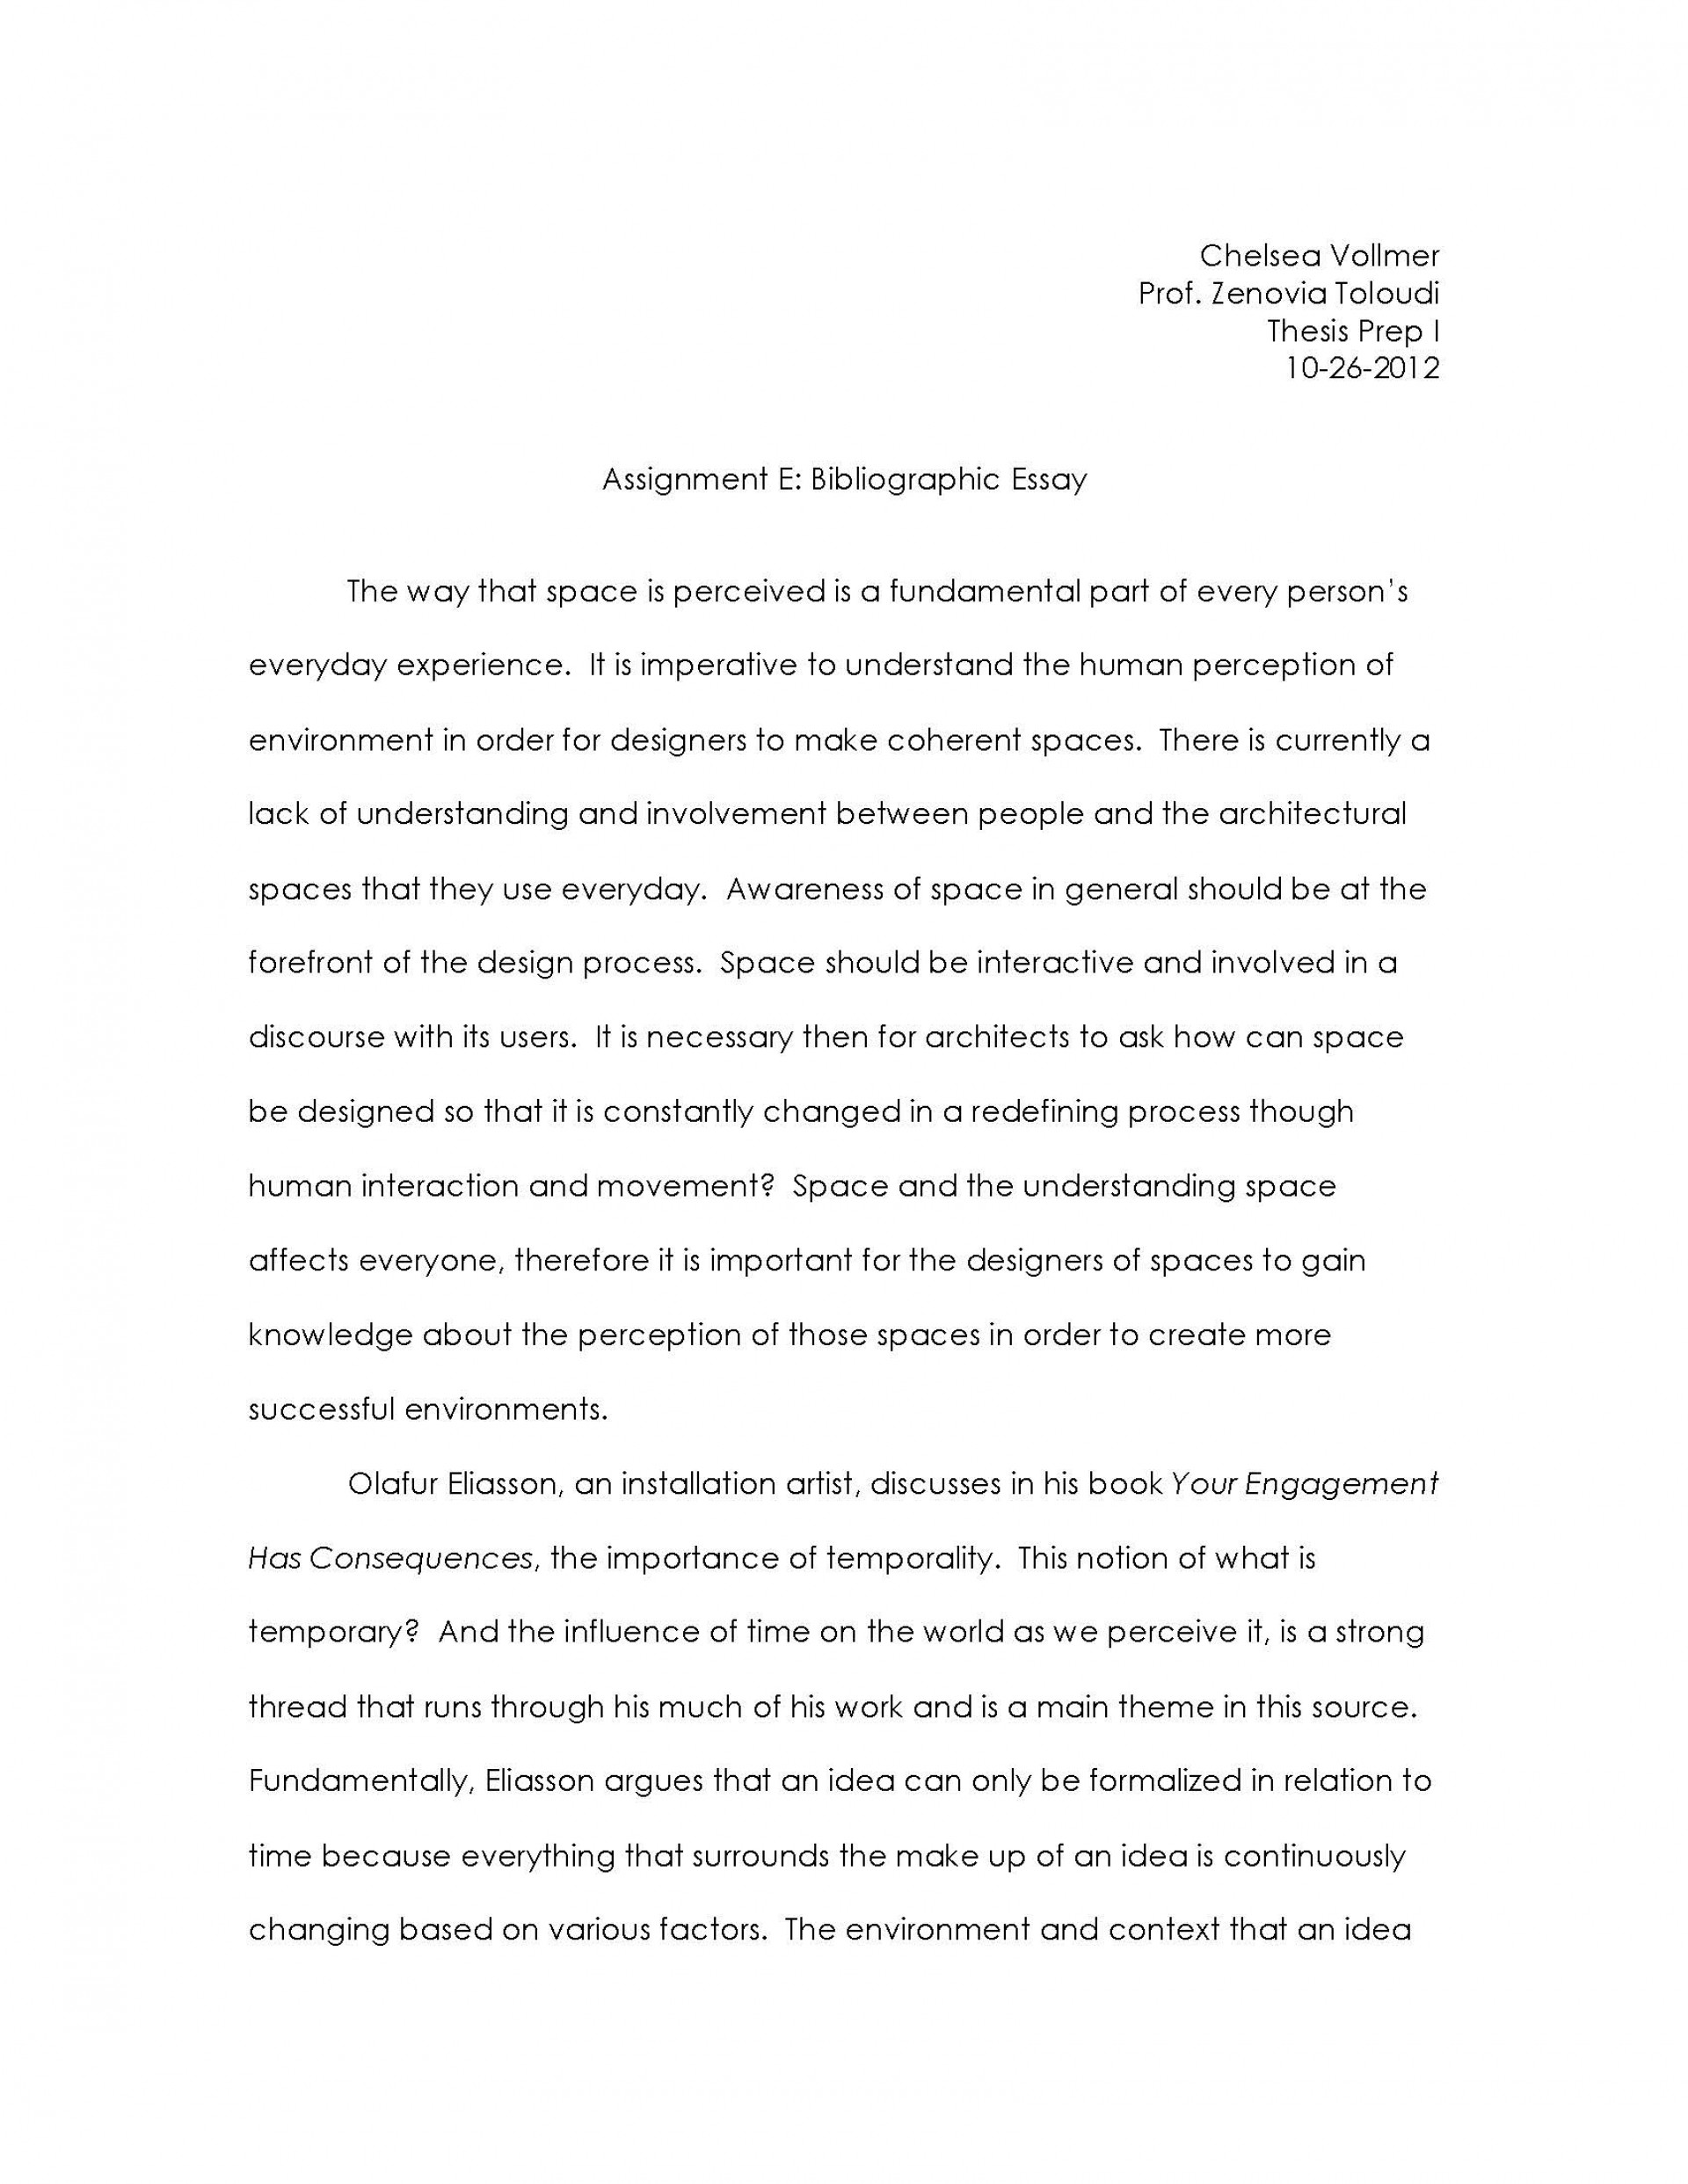 008 Assignment E Page 12 Essay Example Beautiful Satire Examples On Gun Control Questions Ideas 1920